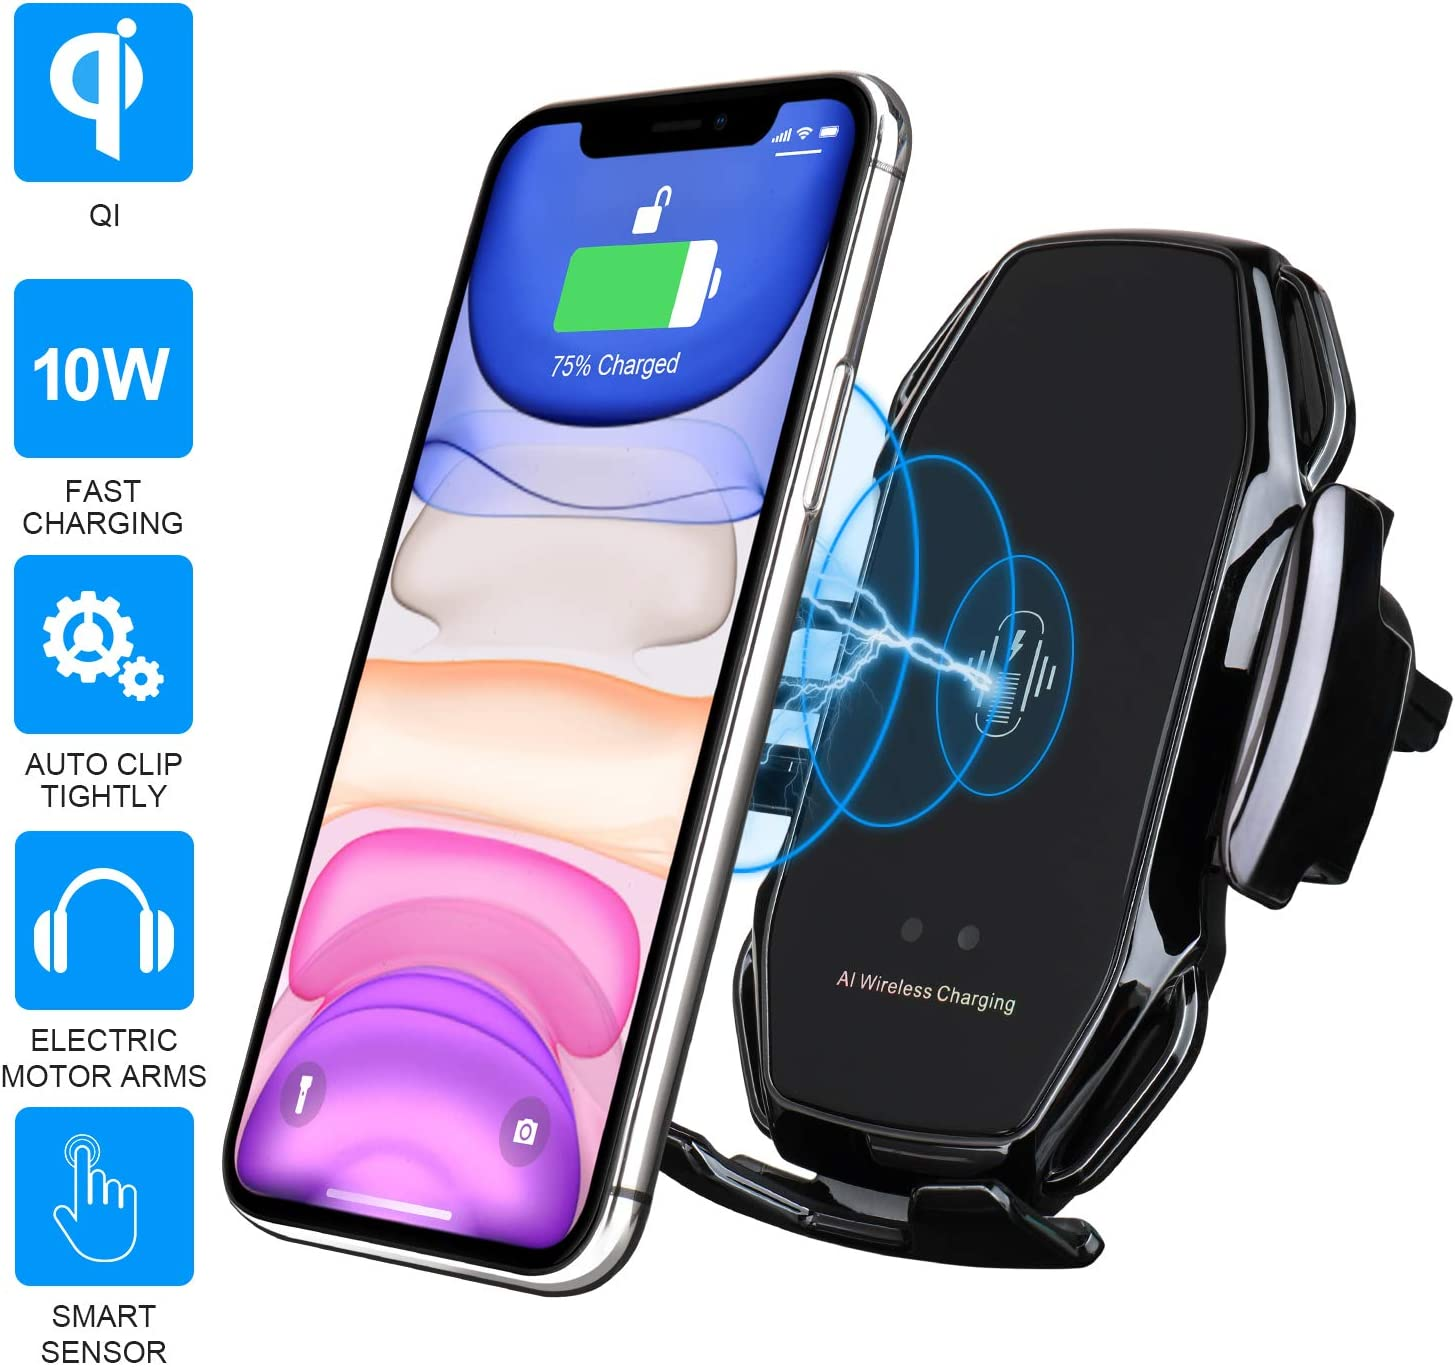 10W Qi Fast Charging Auto-Clamping Car Mount Samsung S10//S10+//S9//S9+//S8//S8+ AnsTOP Wireless Car Charger Car Phone Holder Mount Air Vent Compatible iPhone 11//11 Pro//Pro Max//Xs Max//XS//XR//X//8//8+